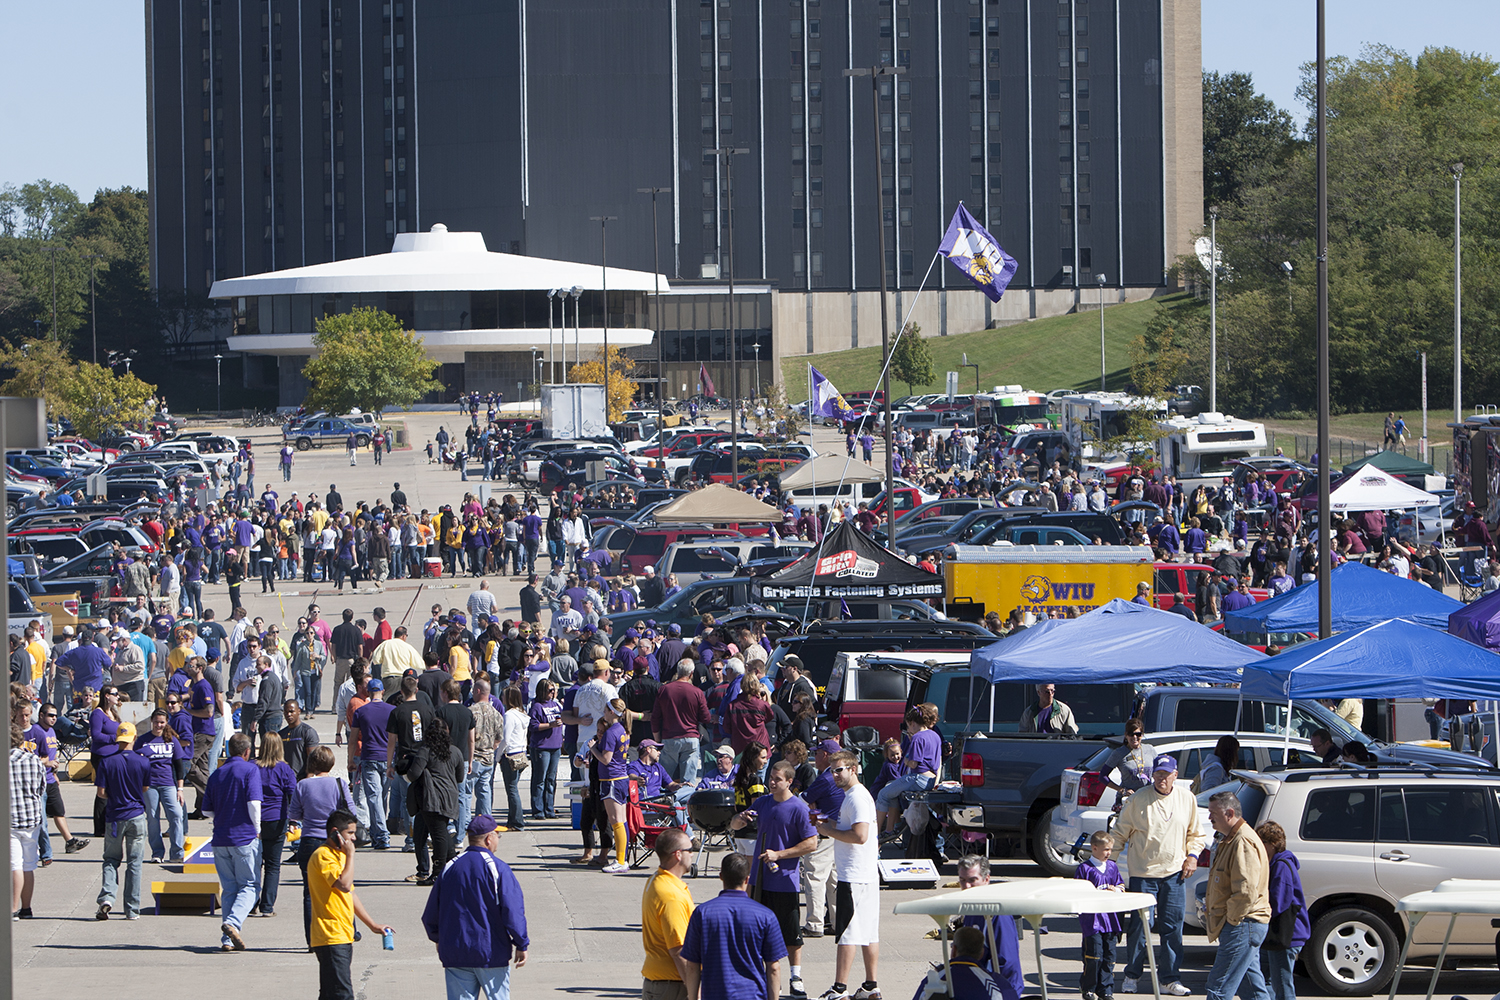 Western Illinois University To Try Beer Sales At Football Games